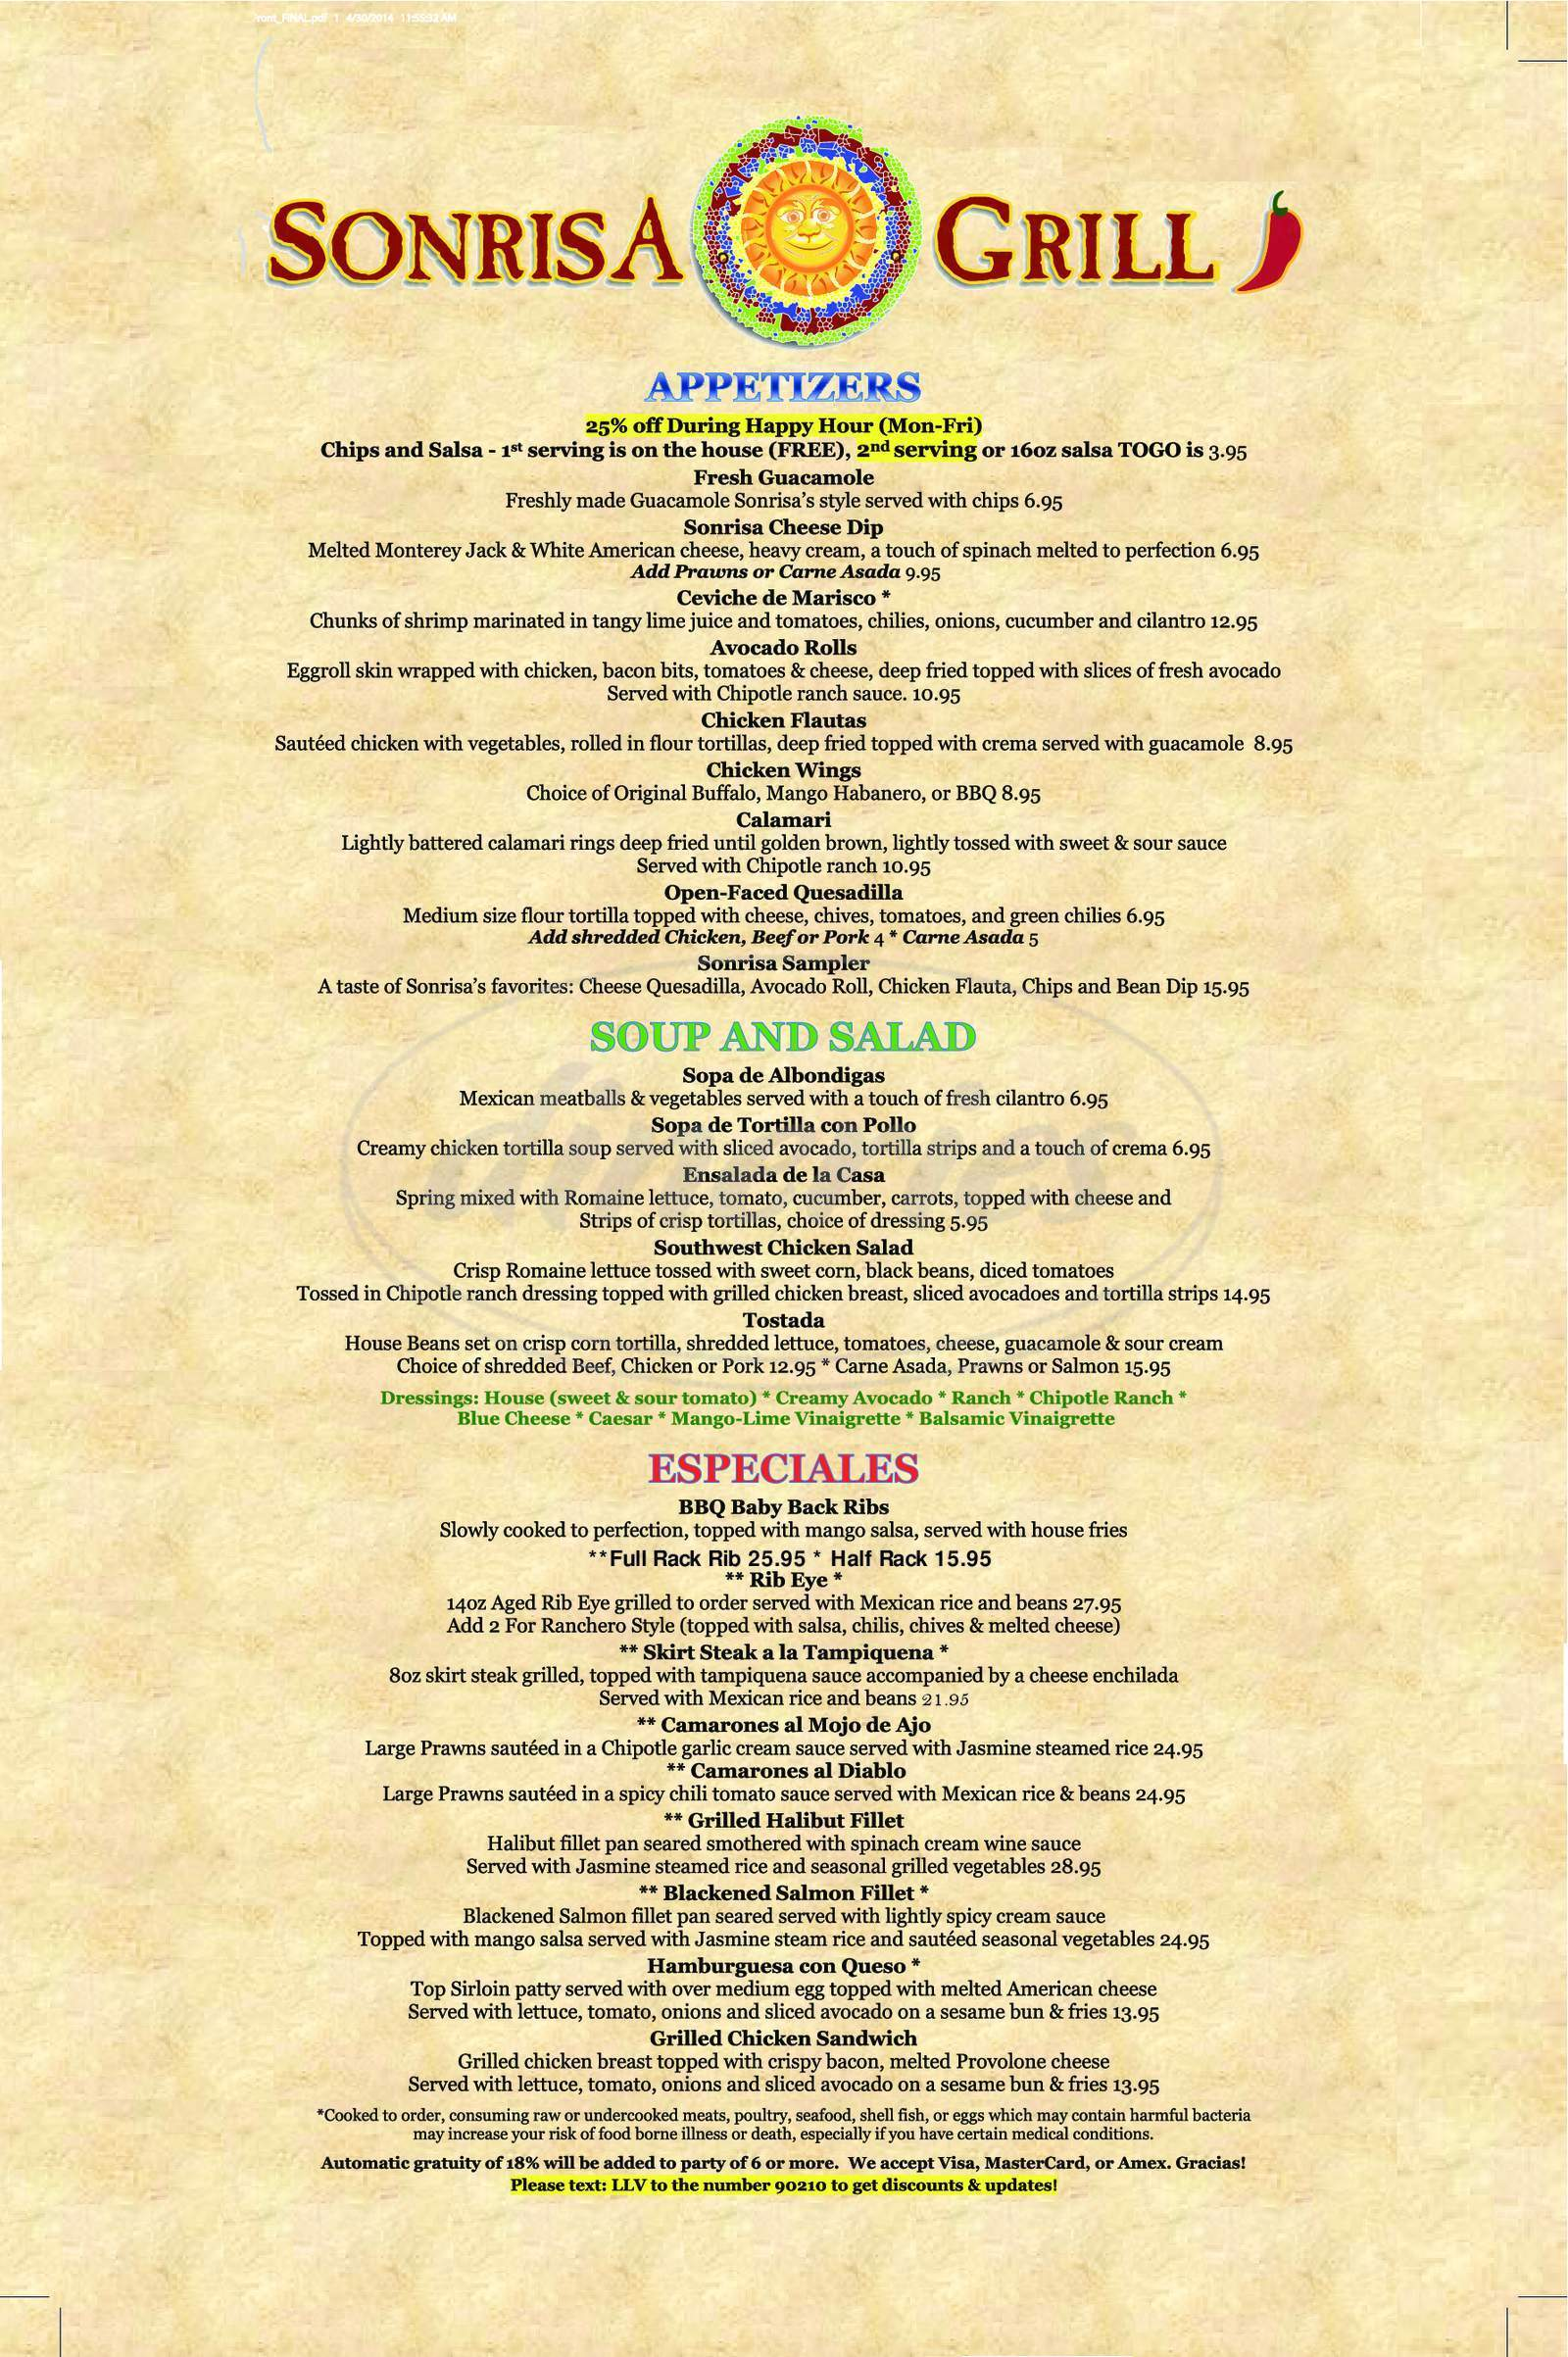 menu for Sonrisa Grill